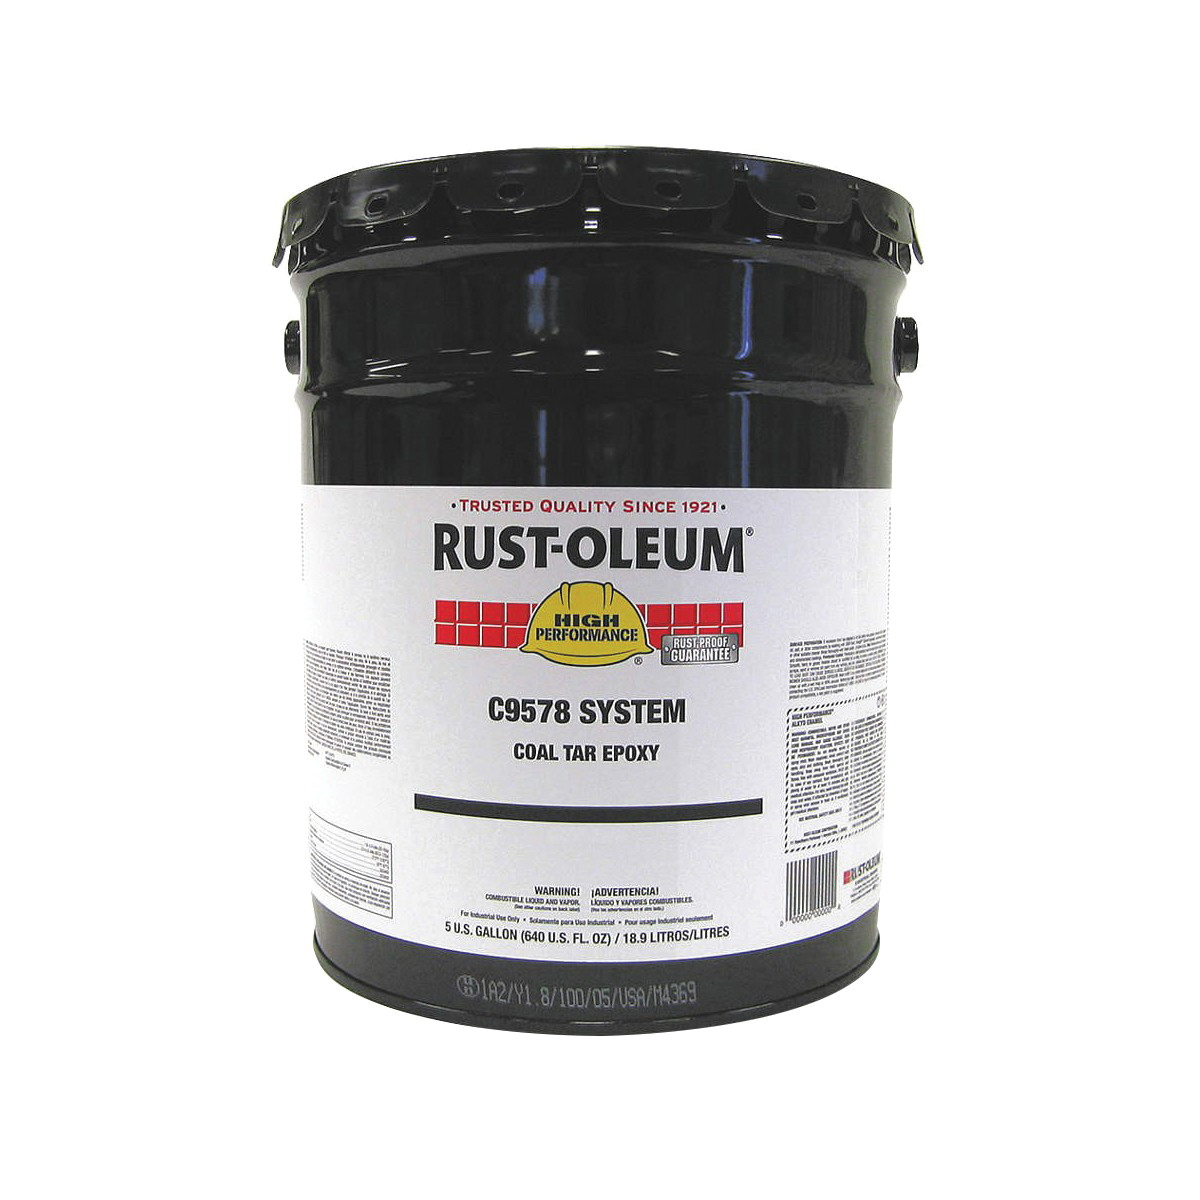 Rust-Oleum® C9578380 C9578 System Coal Tar Epoxy Base, 5 gal Pail, Oil Base, Polyamide Converted Epoxy Blended with Refined Coal Tar Resin, Black